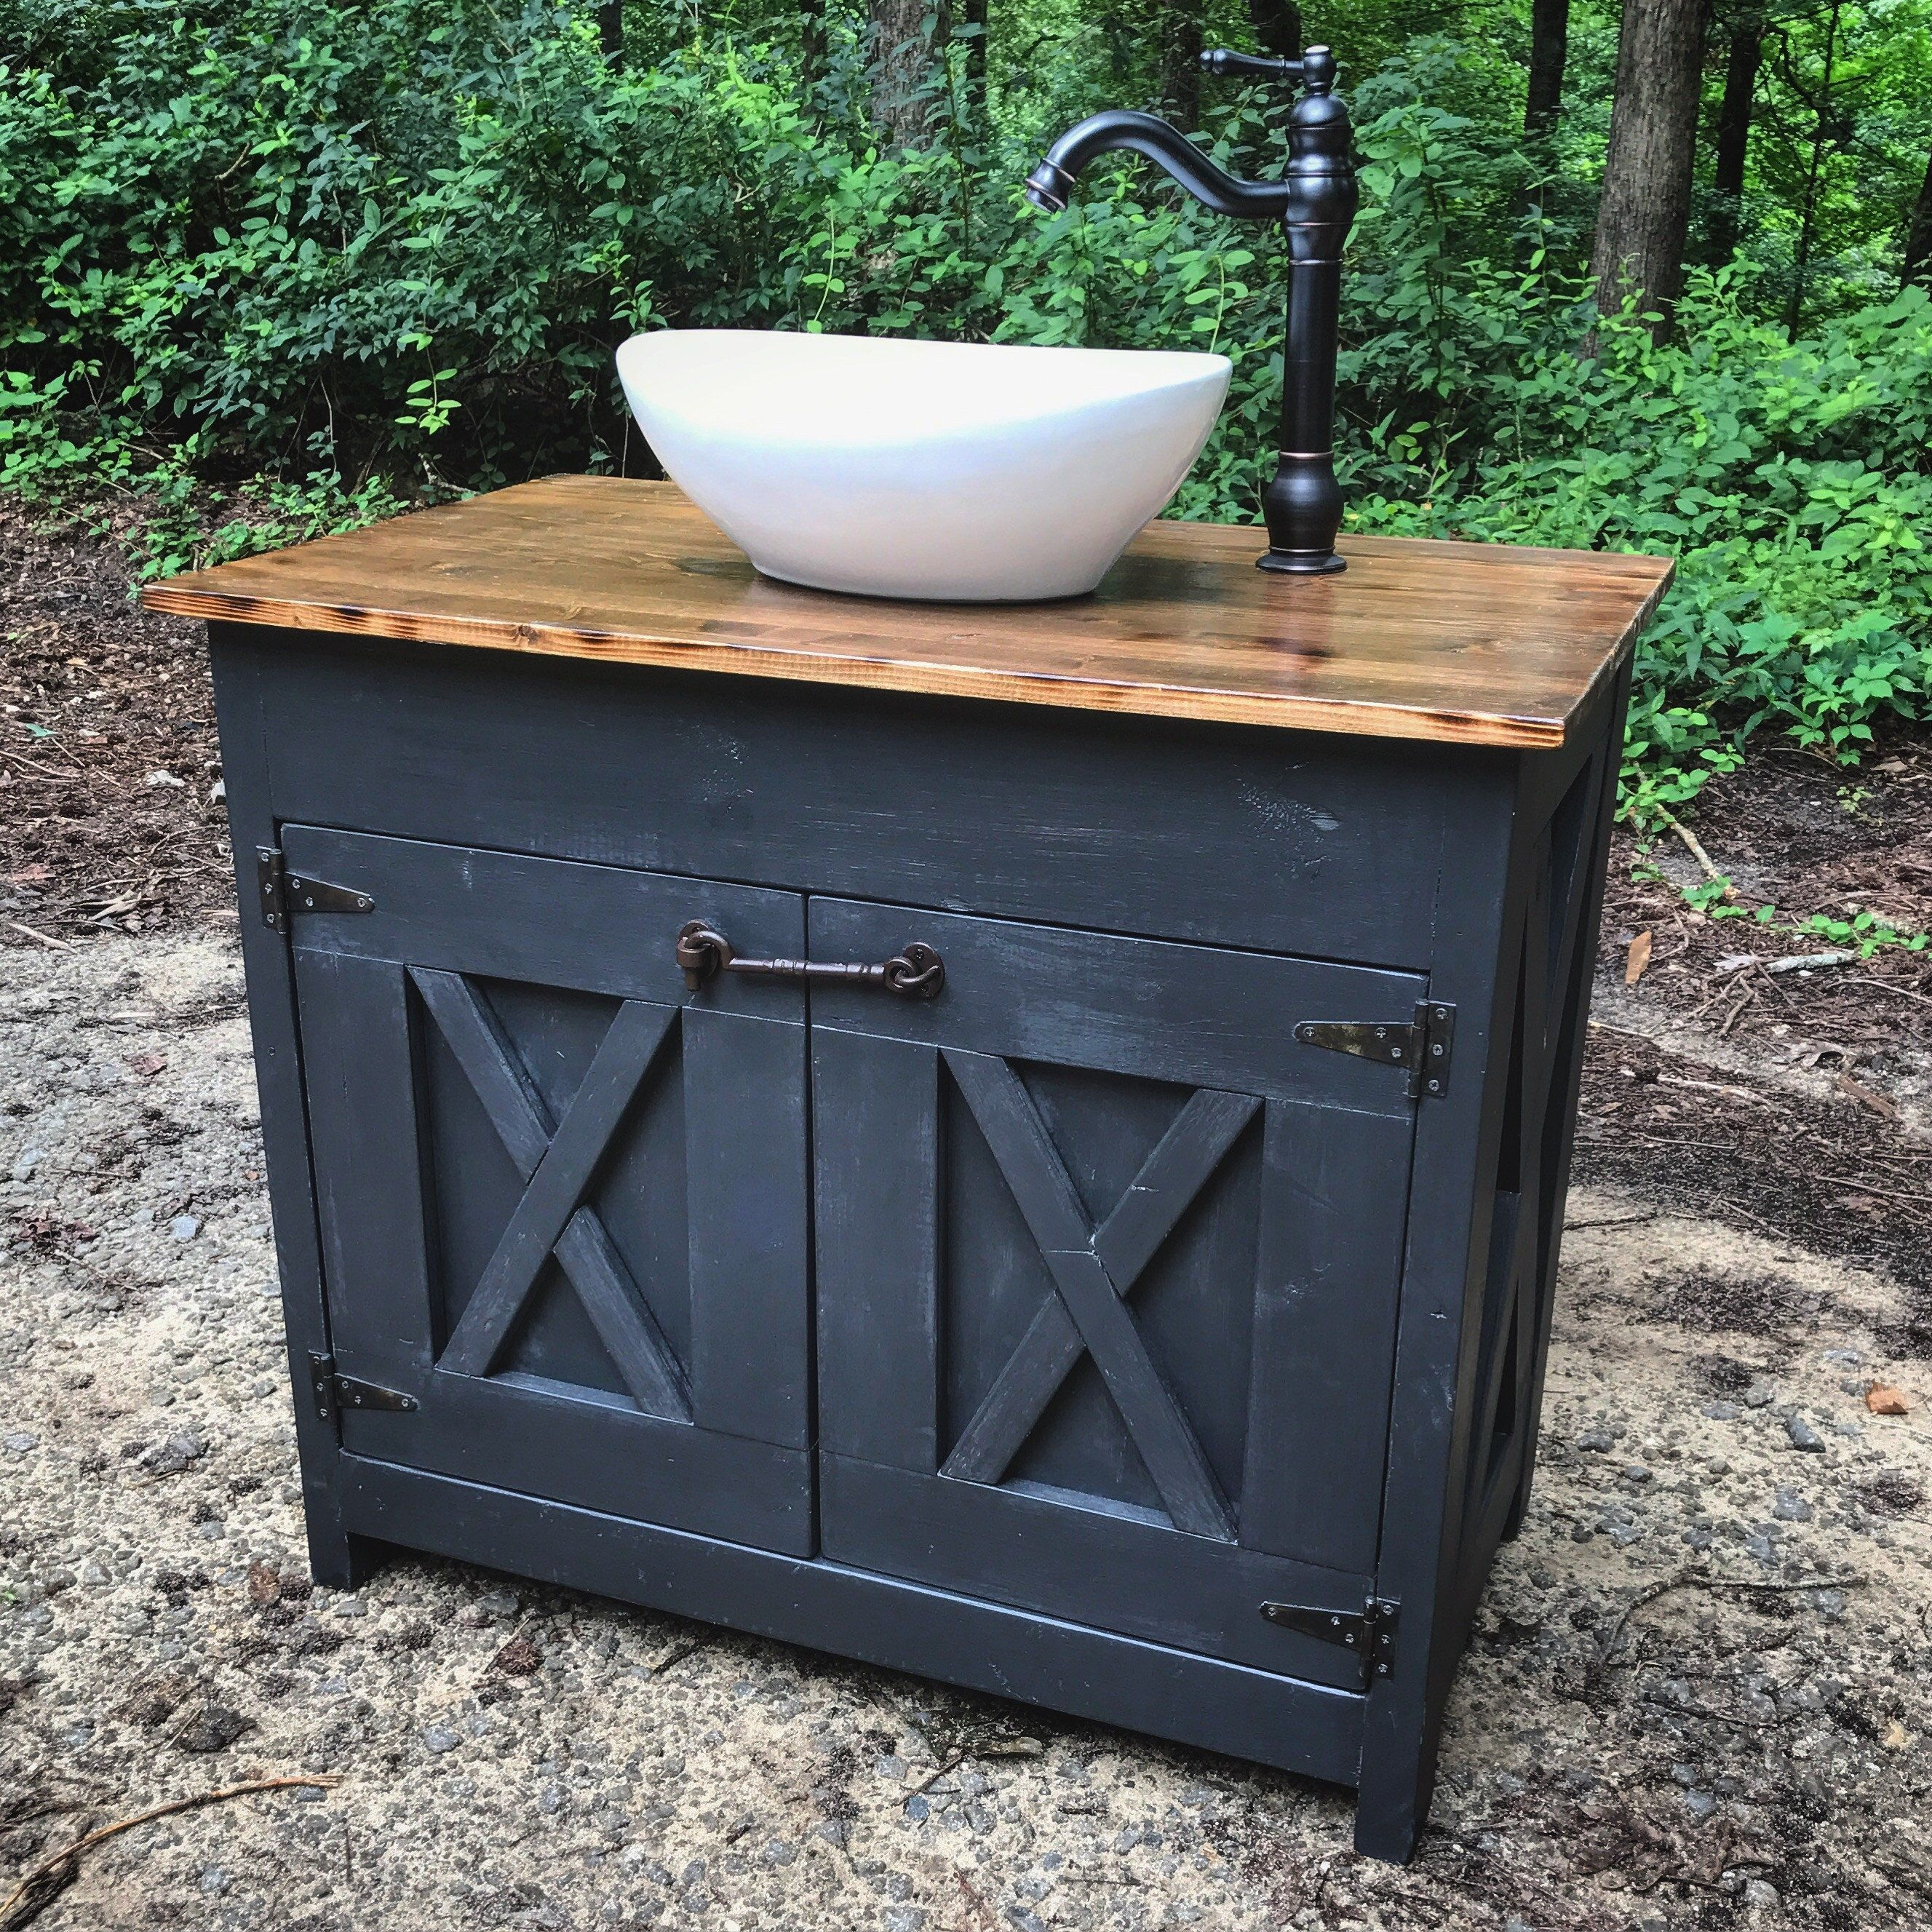 3 Foot Wide Vanity Single Sink 36 Wide 22 Deep 30 Inches Tall All Other Different Wi Farmhouse Bathroom Vanity Vessel Sink Bathroom Vanity Diy Bathroom Vanity